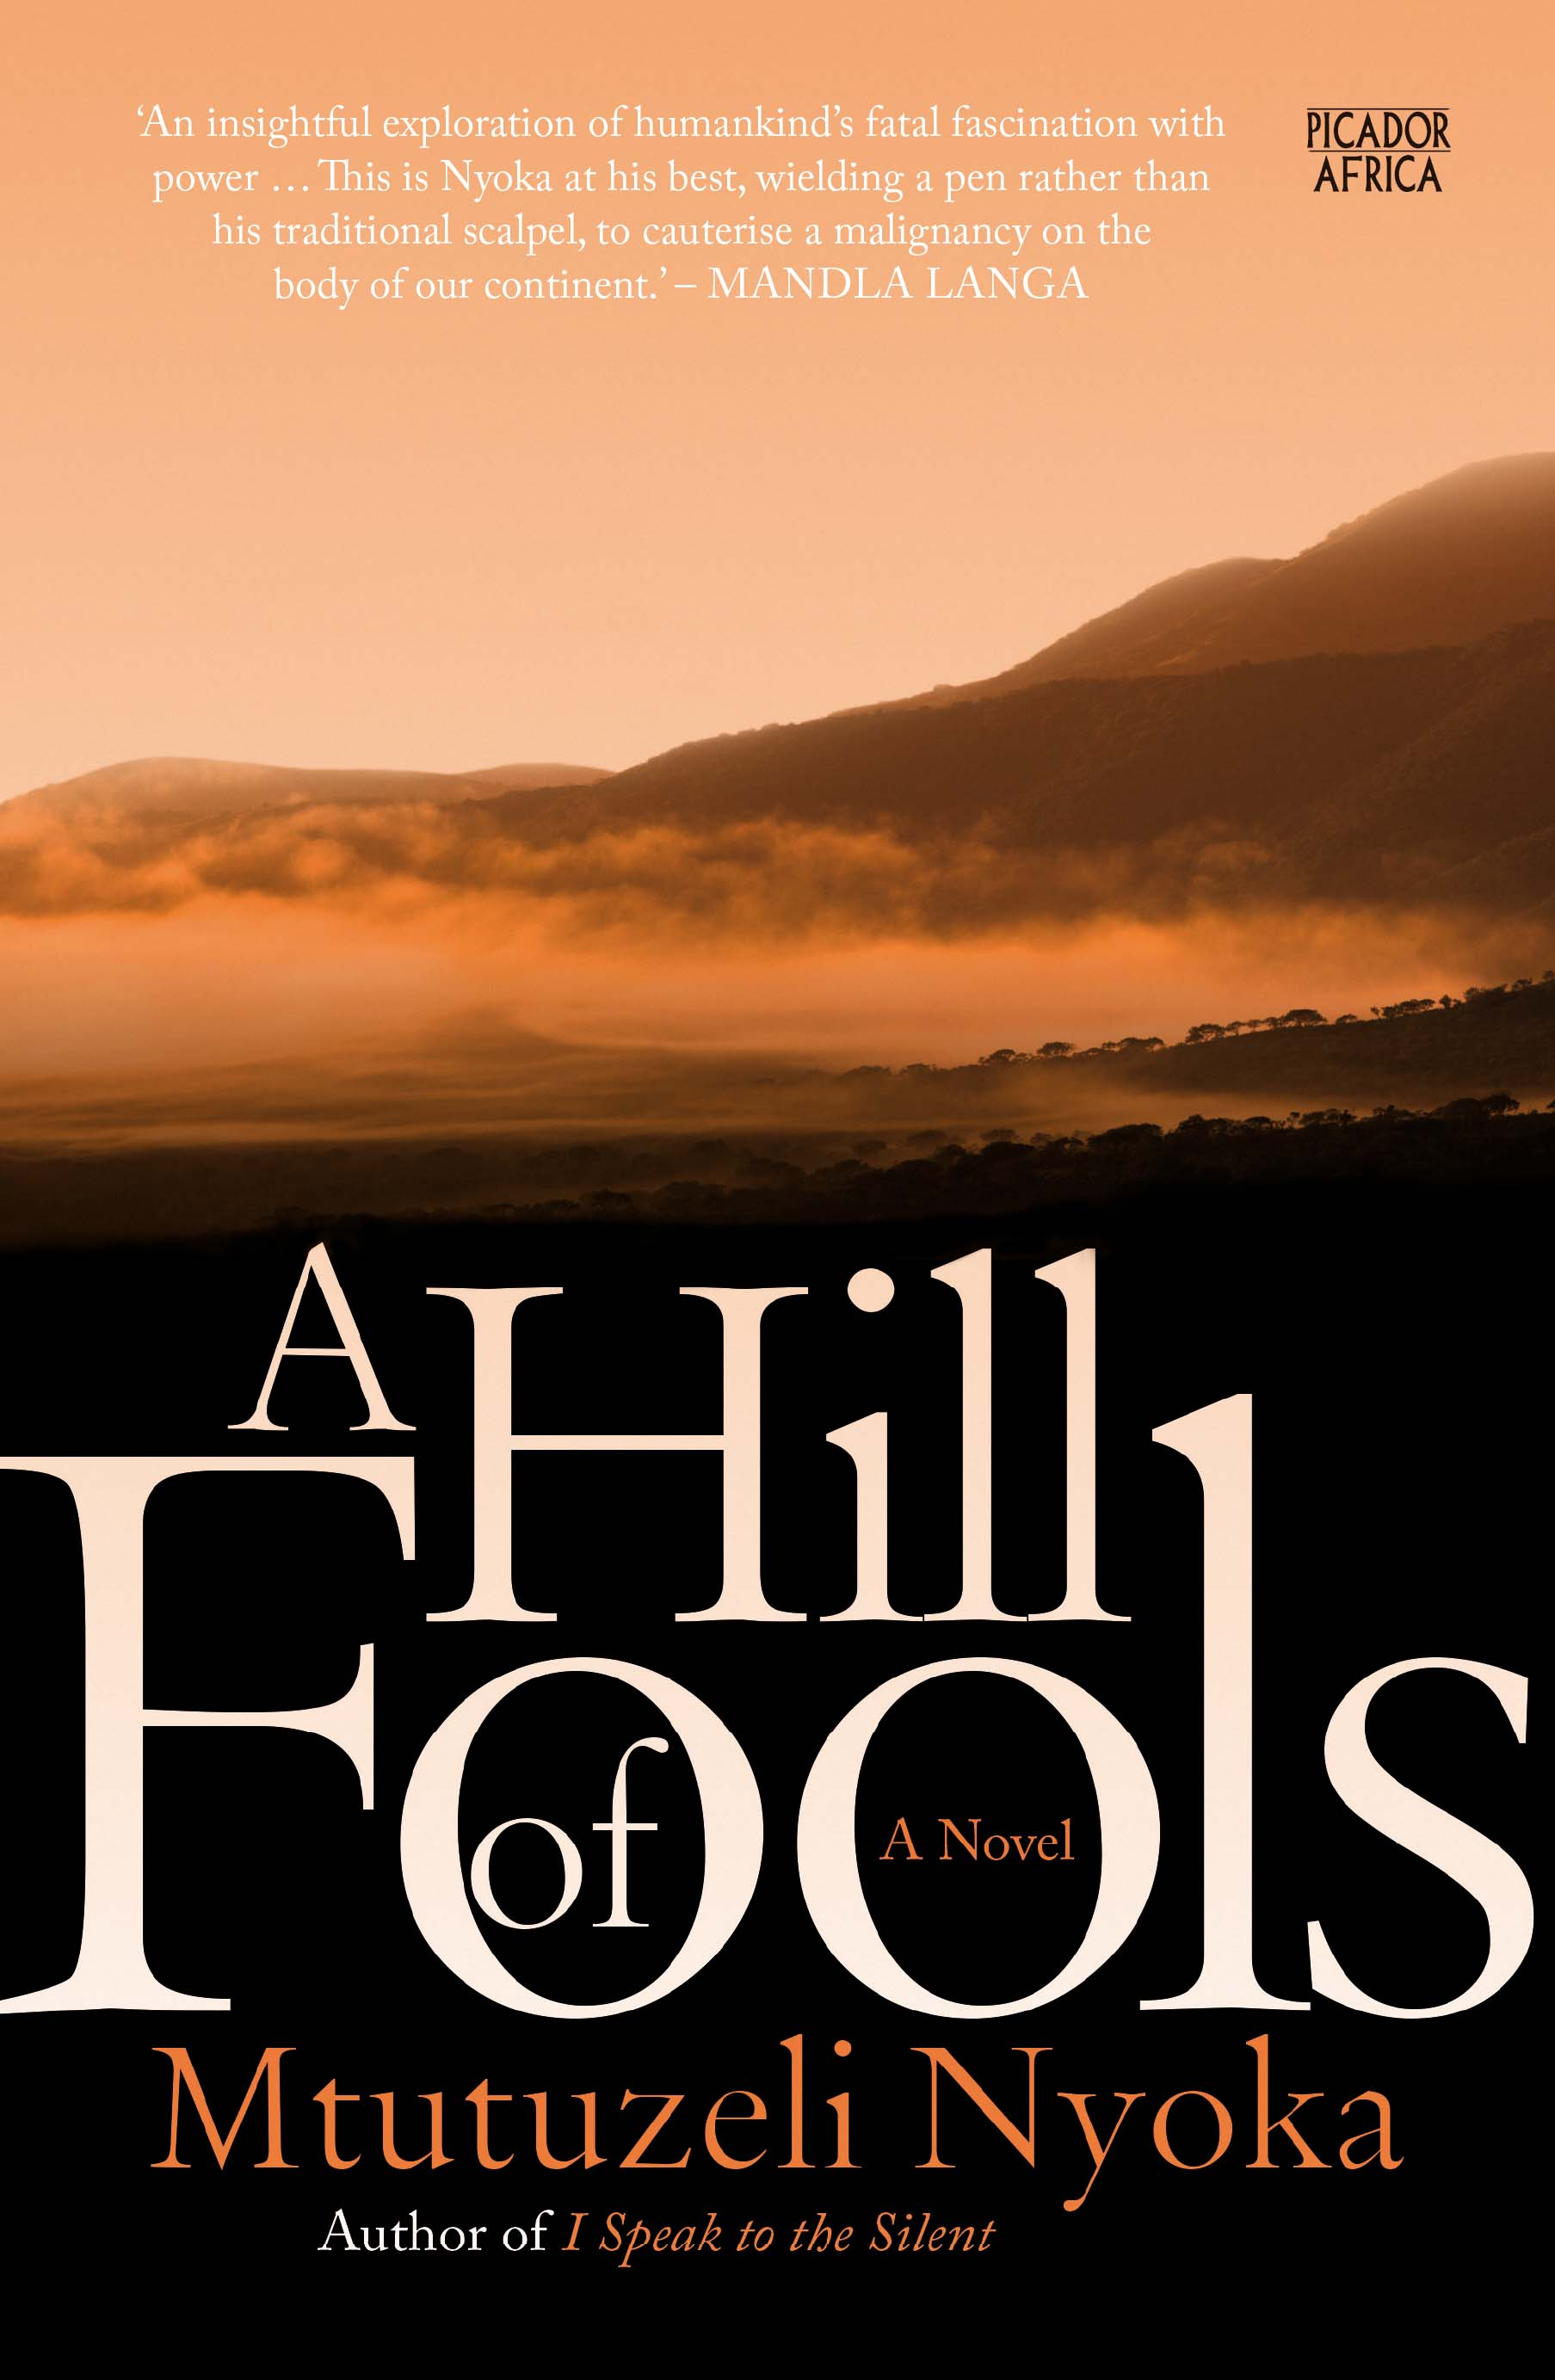 A Hill of Fools by Mtutuzeli Nyoka